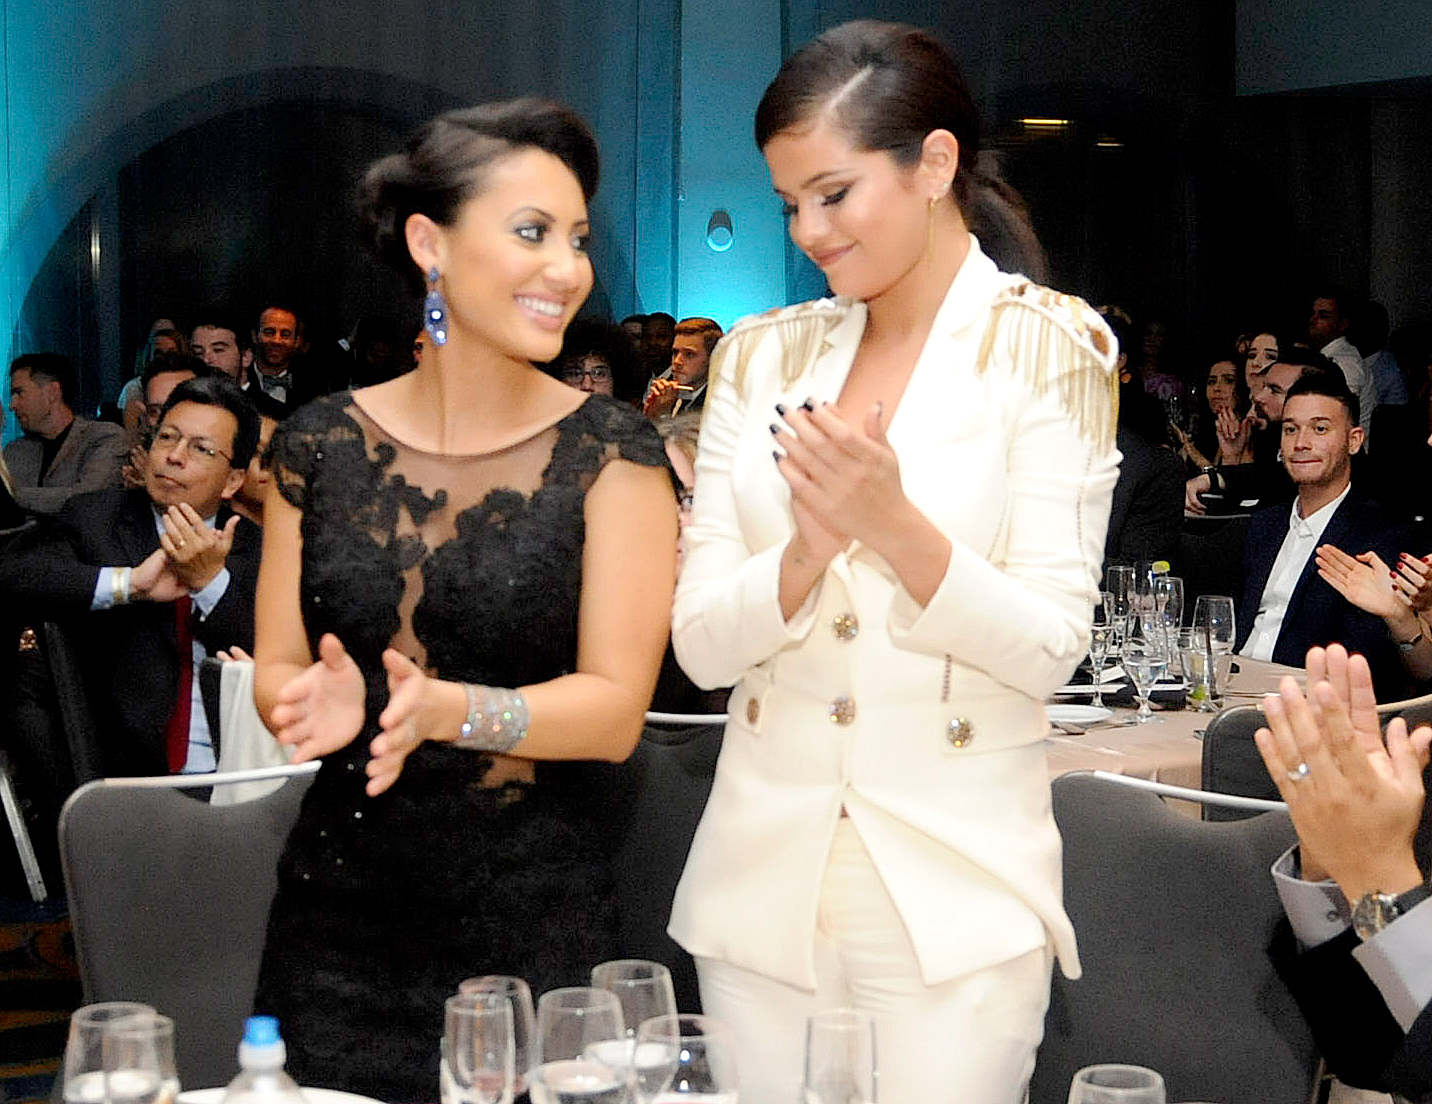 Francia Raisa and Selena Gomez attend the Unlikely Heroes' 3rd Annual Awards Dinner And Gala at Sofitel Hotel on November 8, 2014 in Los Angeles, California.